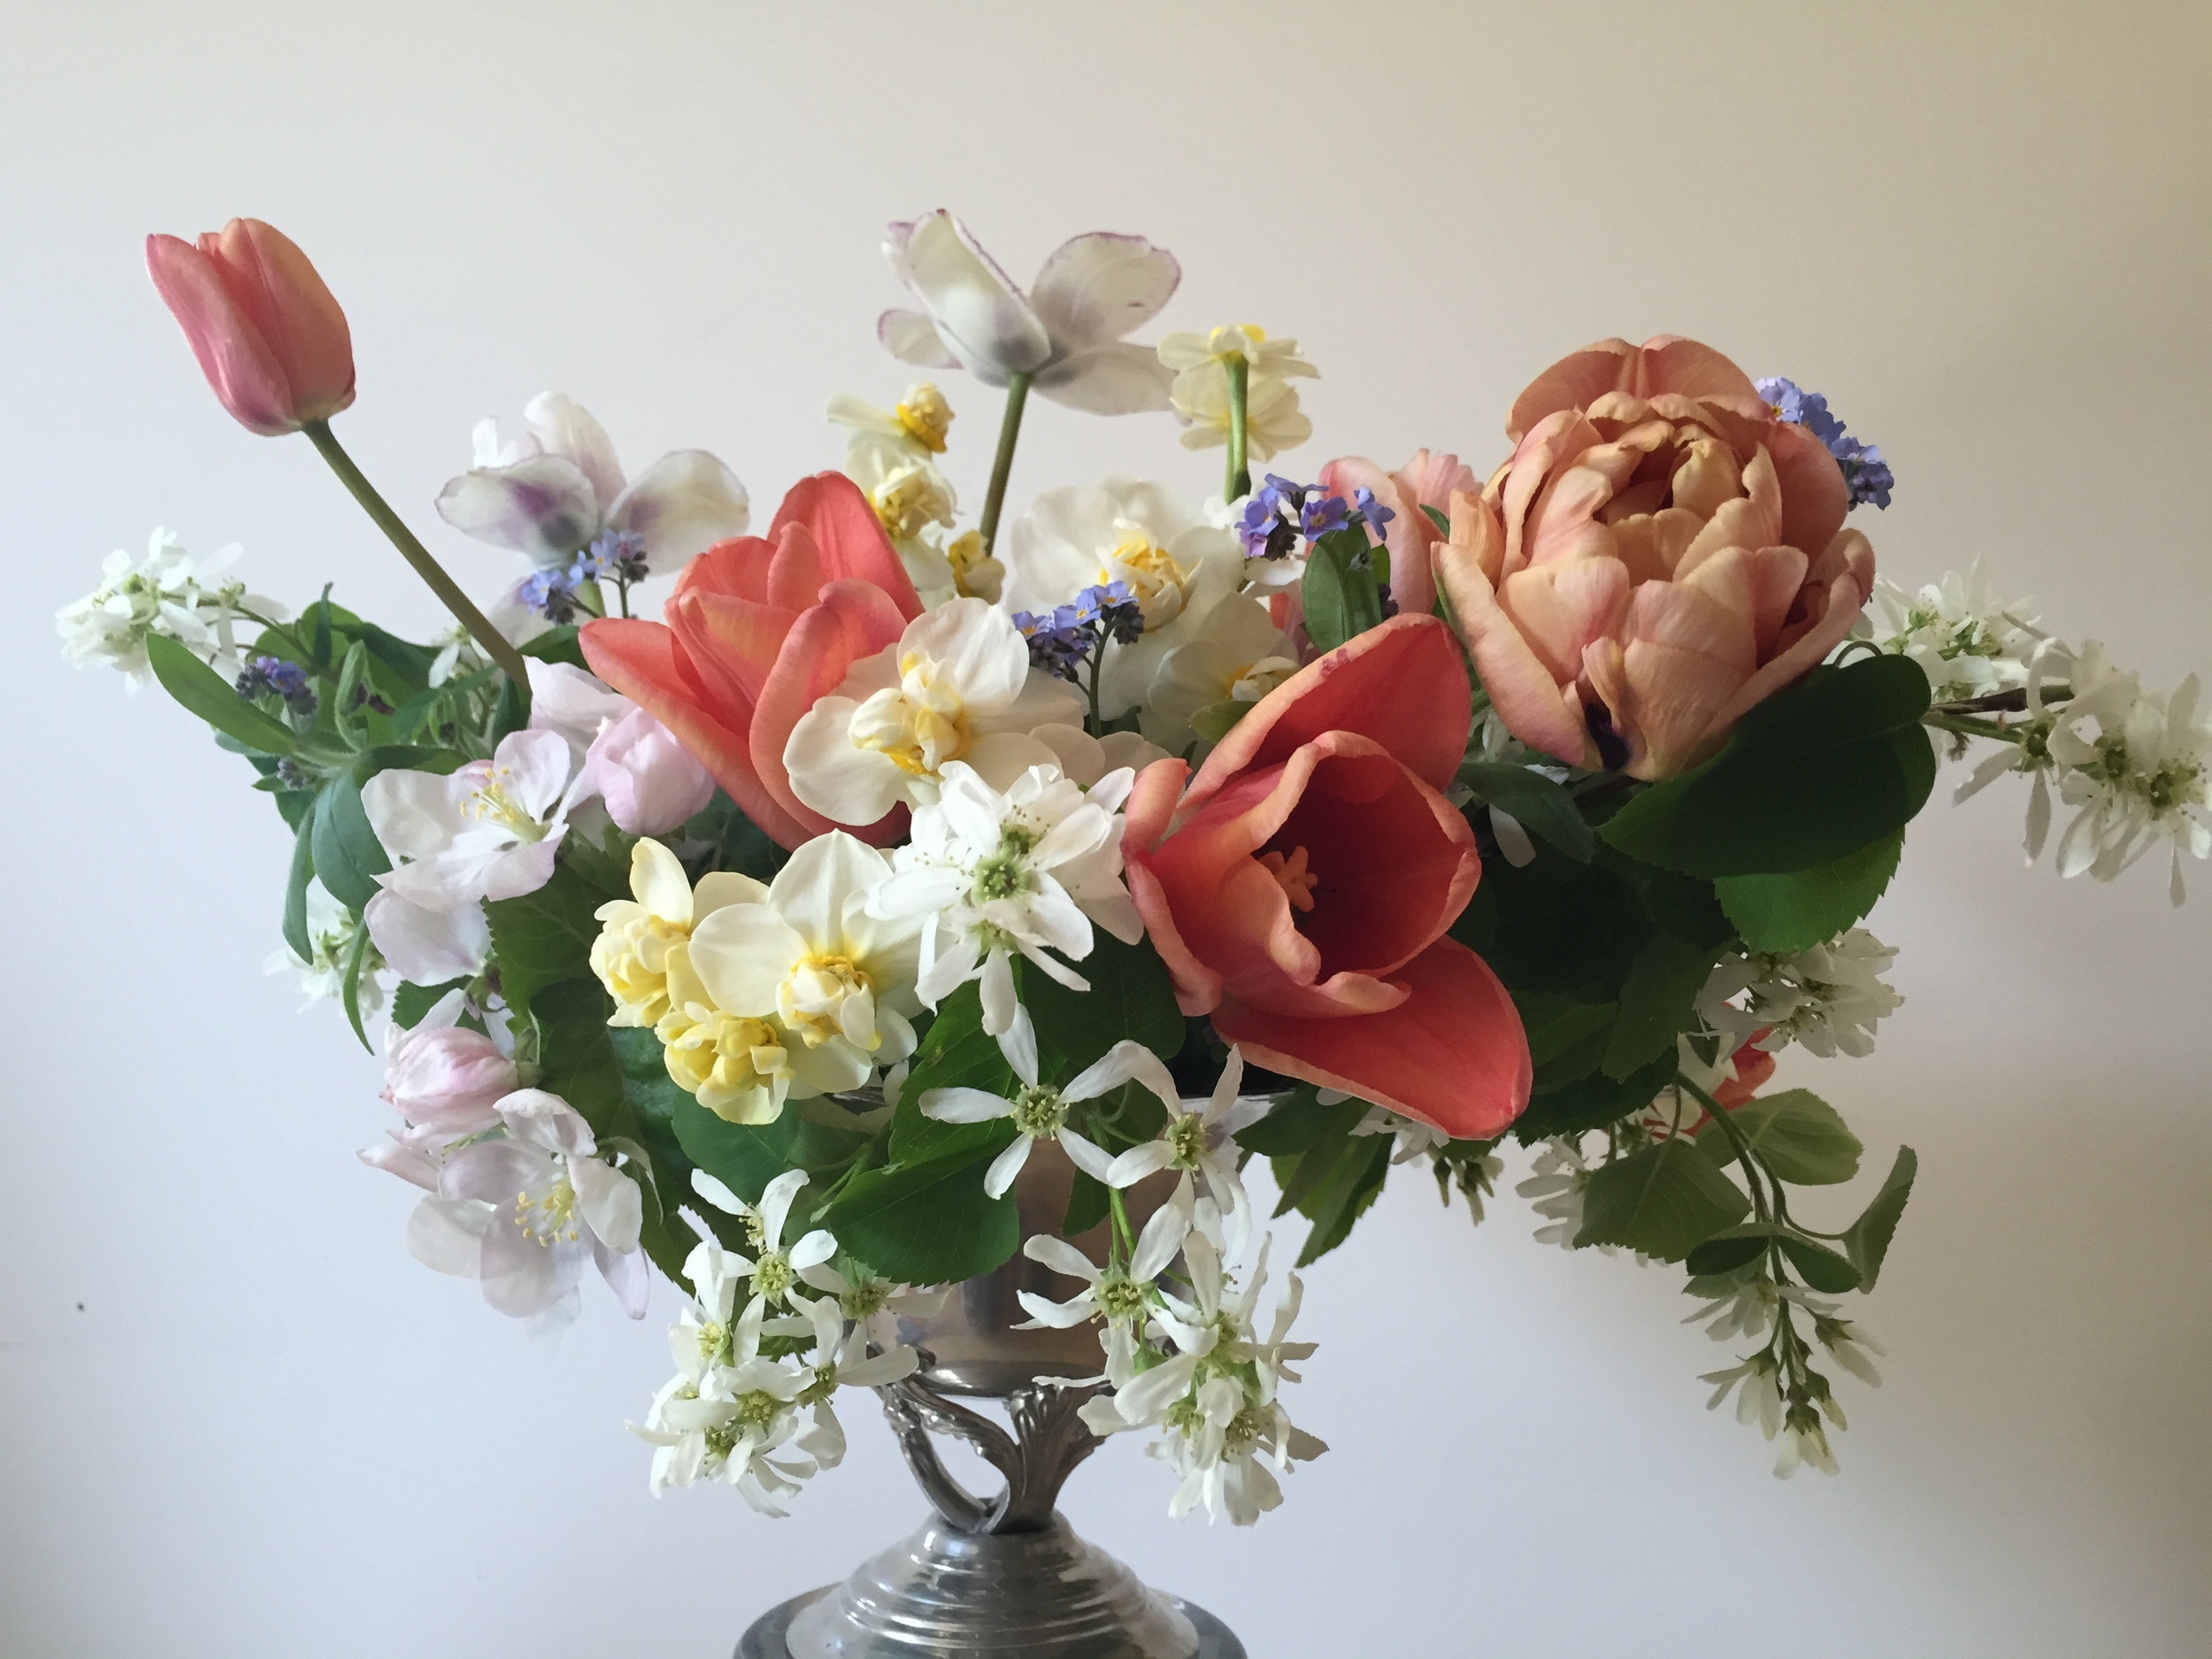 A centrepiece arrangement featuring 'Apricot Foxx,' 'Belle Epoque' and 'Shirley' tulips, 'Cheerfulness' and 'Minnow' daffodils, apple and saskatoon branches, forget-me-nots